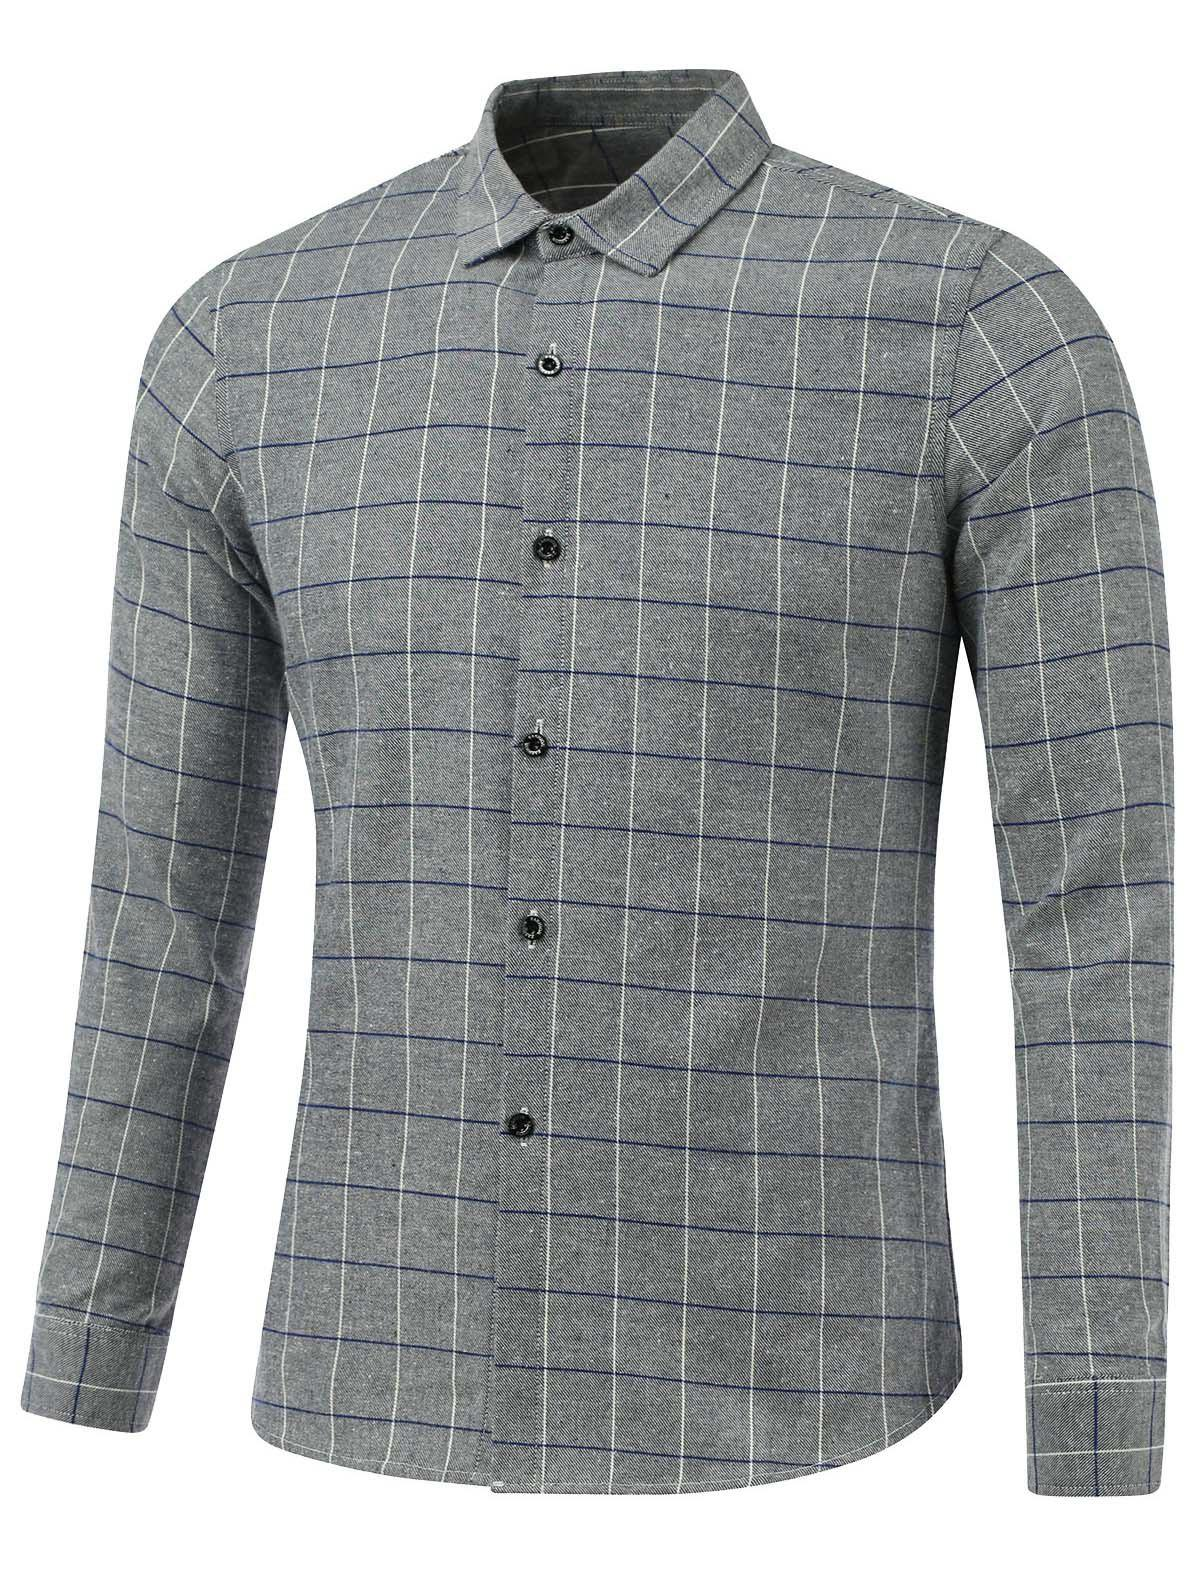 Checked Print Turn-Down Collar Long Sleeve Shirt - GRAY 3XL